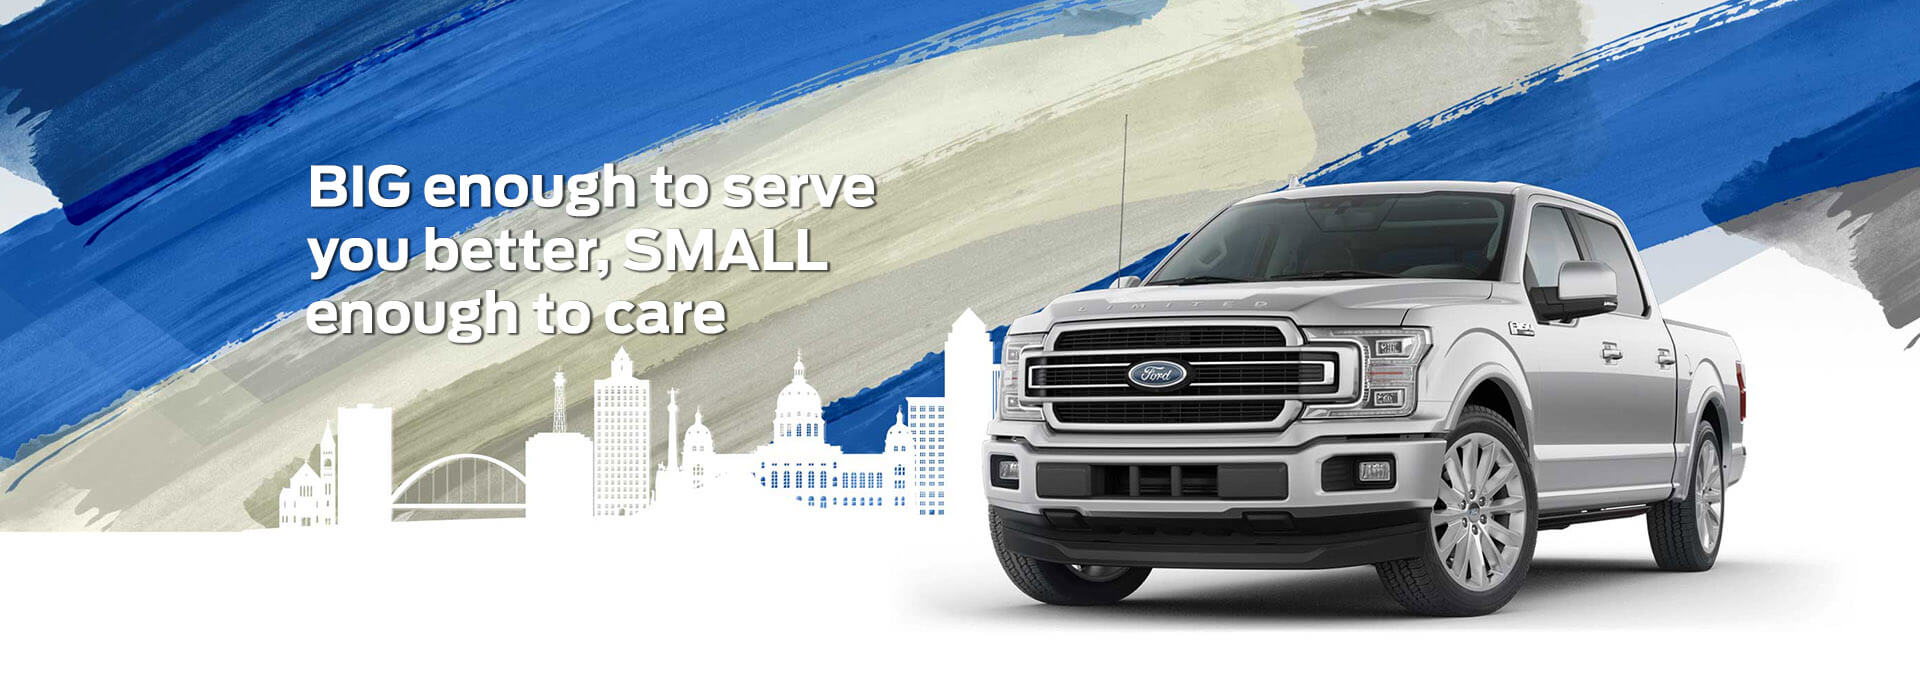 Ford Dealer Des Moines Ia Charles Gabus Ford